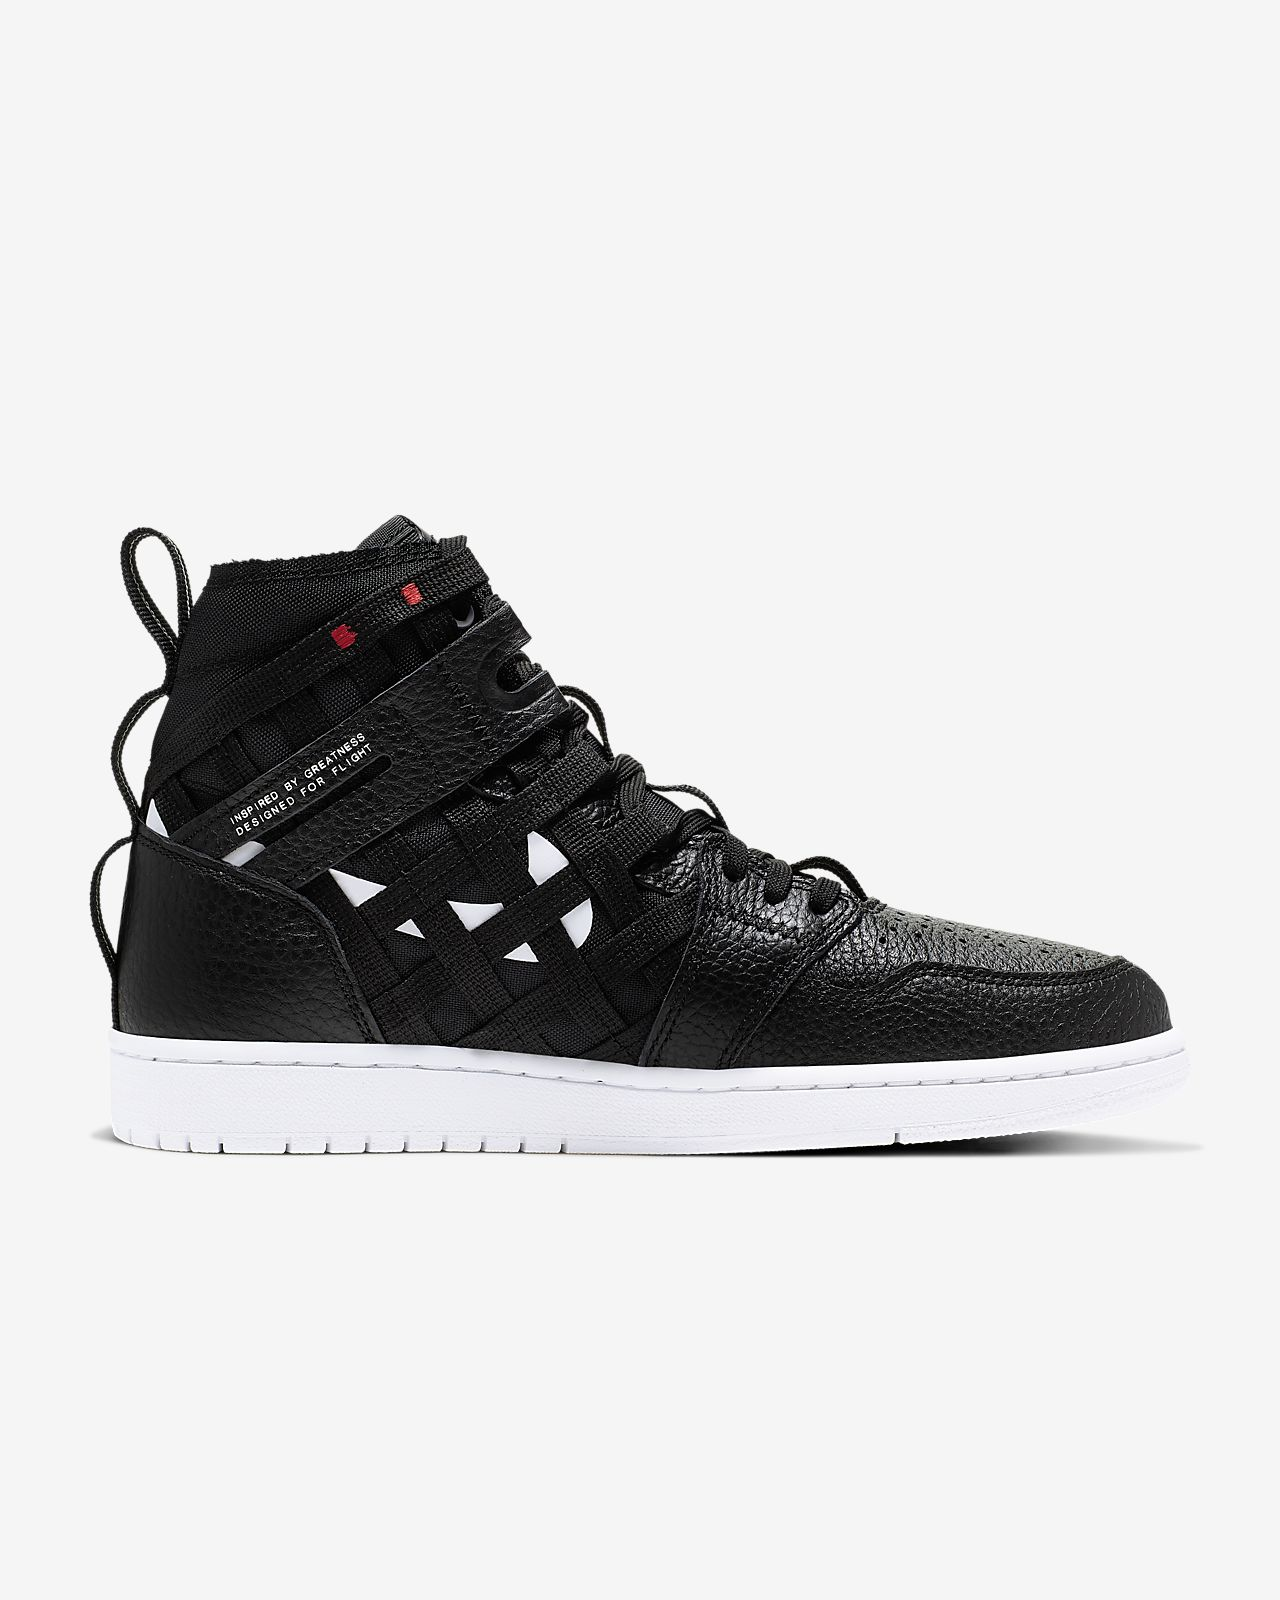 9123176dab25f9 Air Jordan 1 Cargo Men s Shoe. Nike.com ID